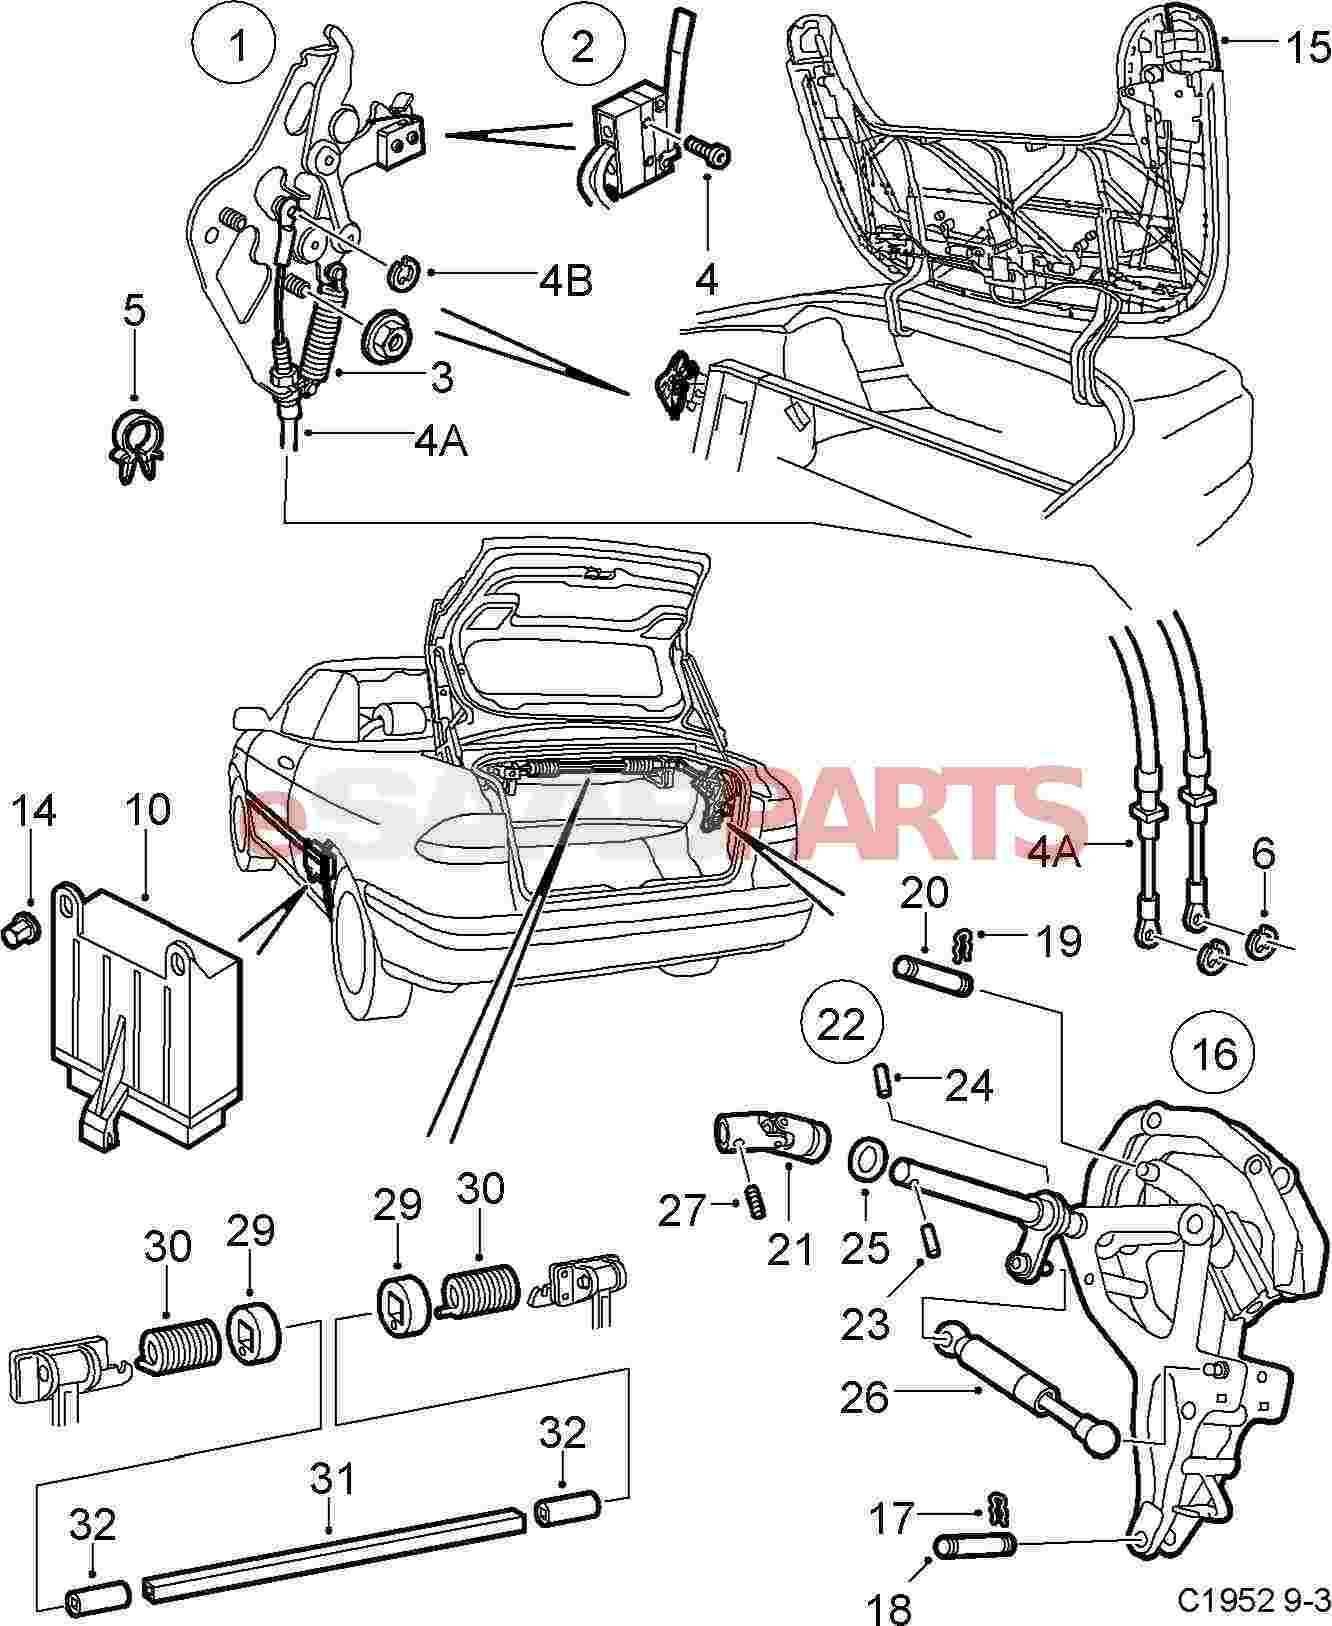 2003 saab 9 3 parts diagram  u2022 wiring diagram for free